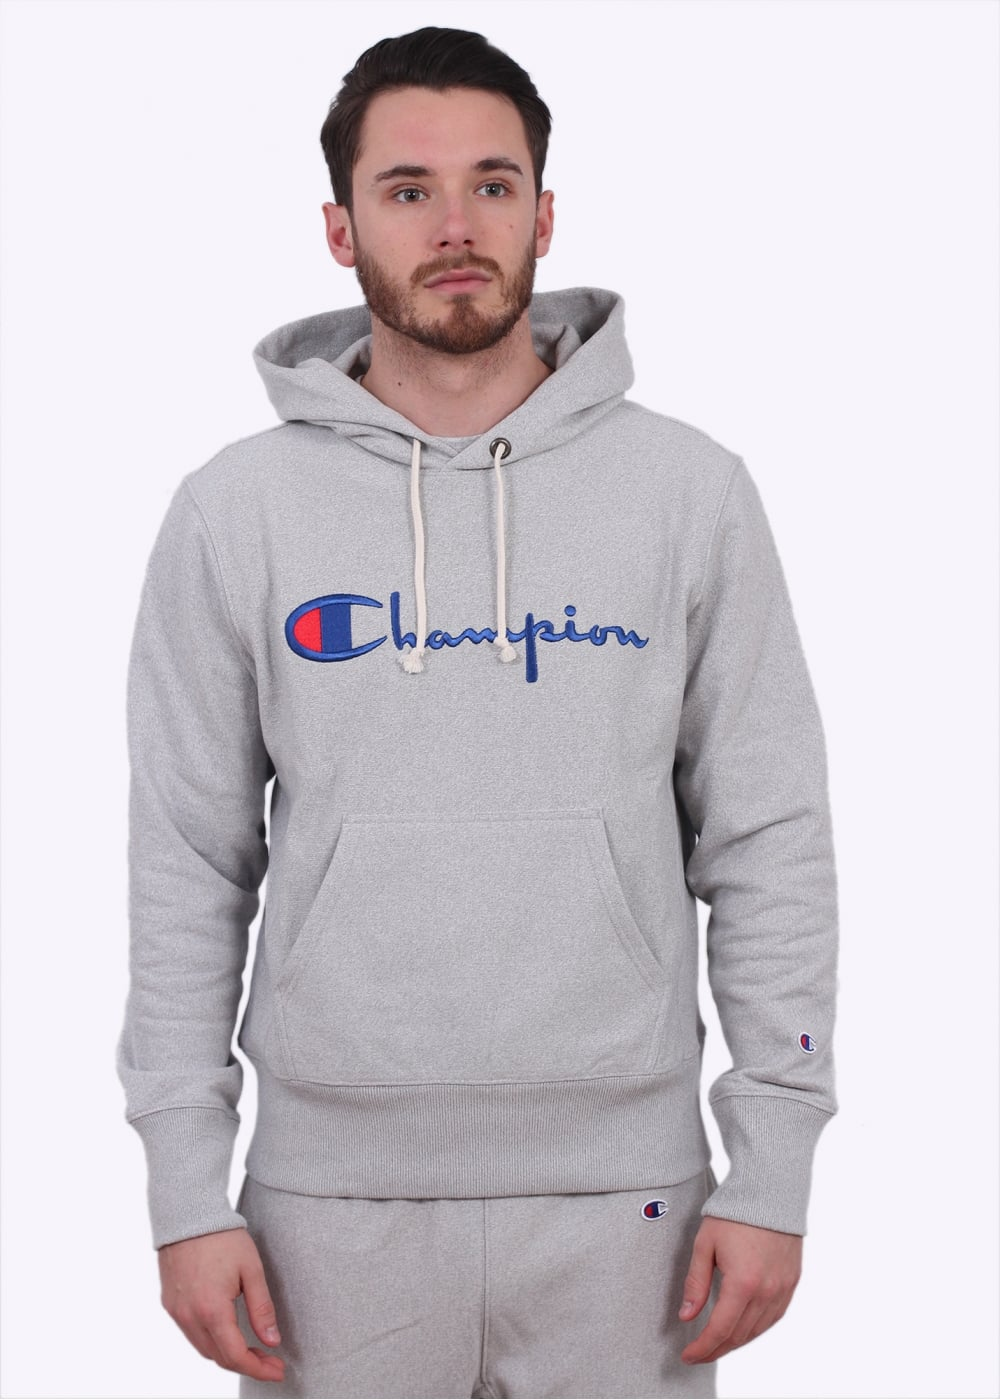 Champion Reverse Weave Hooded Sweater - Light Grey - Hoodies from ... 805471a35